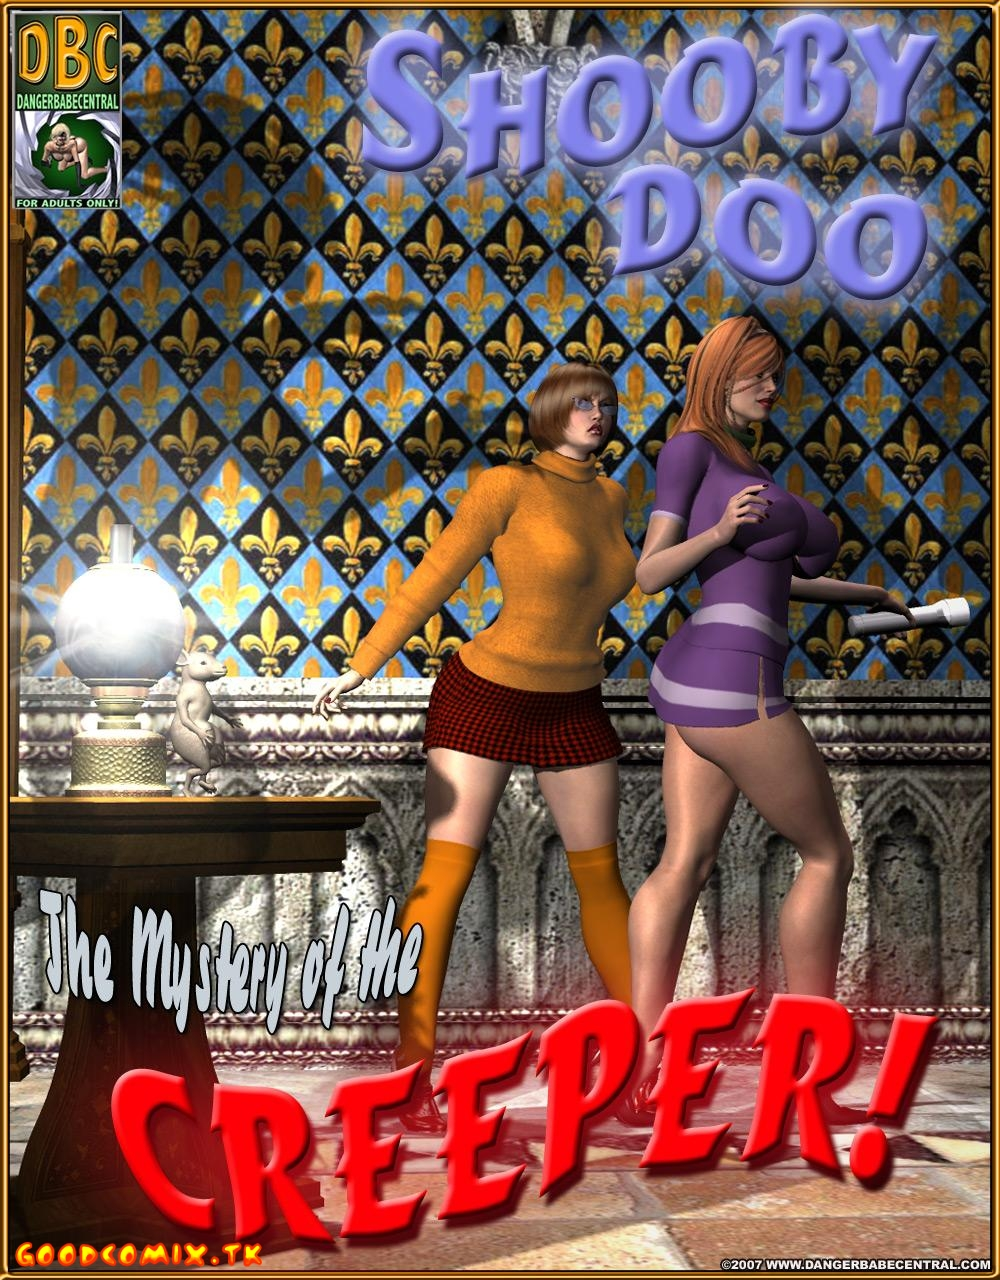 Goodcomix Scooby Doo - [Danger Babe Central] - The Mystery of the CREEPER!